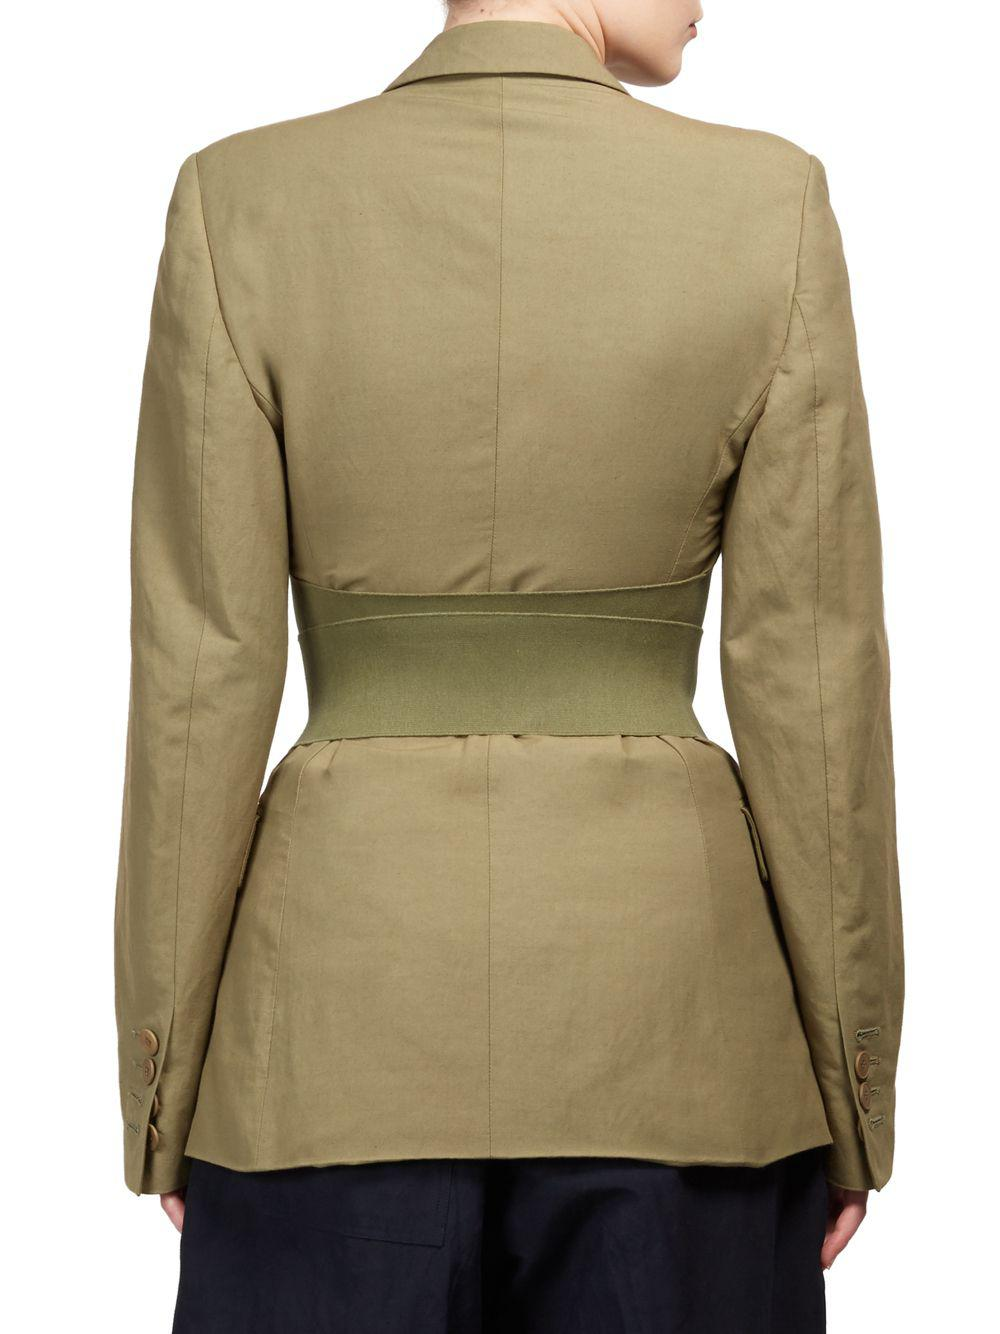 3d740d902ec Lyst - Stella McCartney Abby Corset Jacket